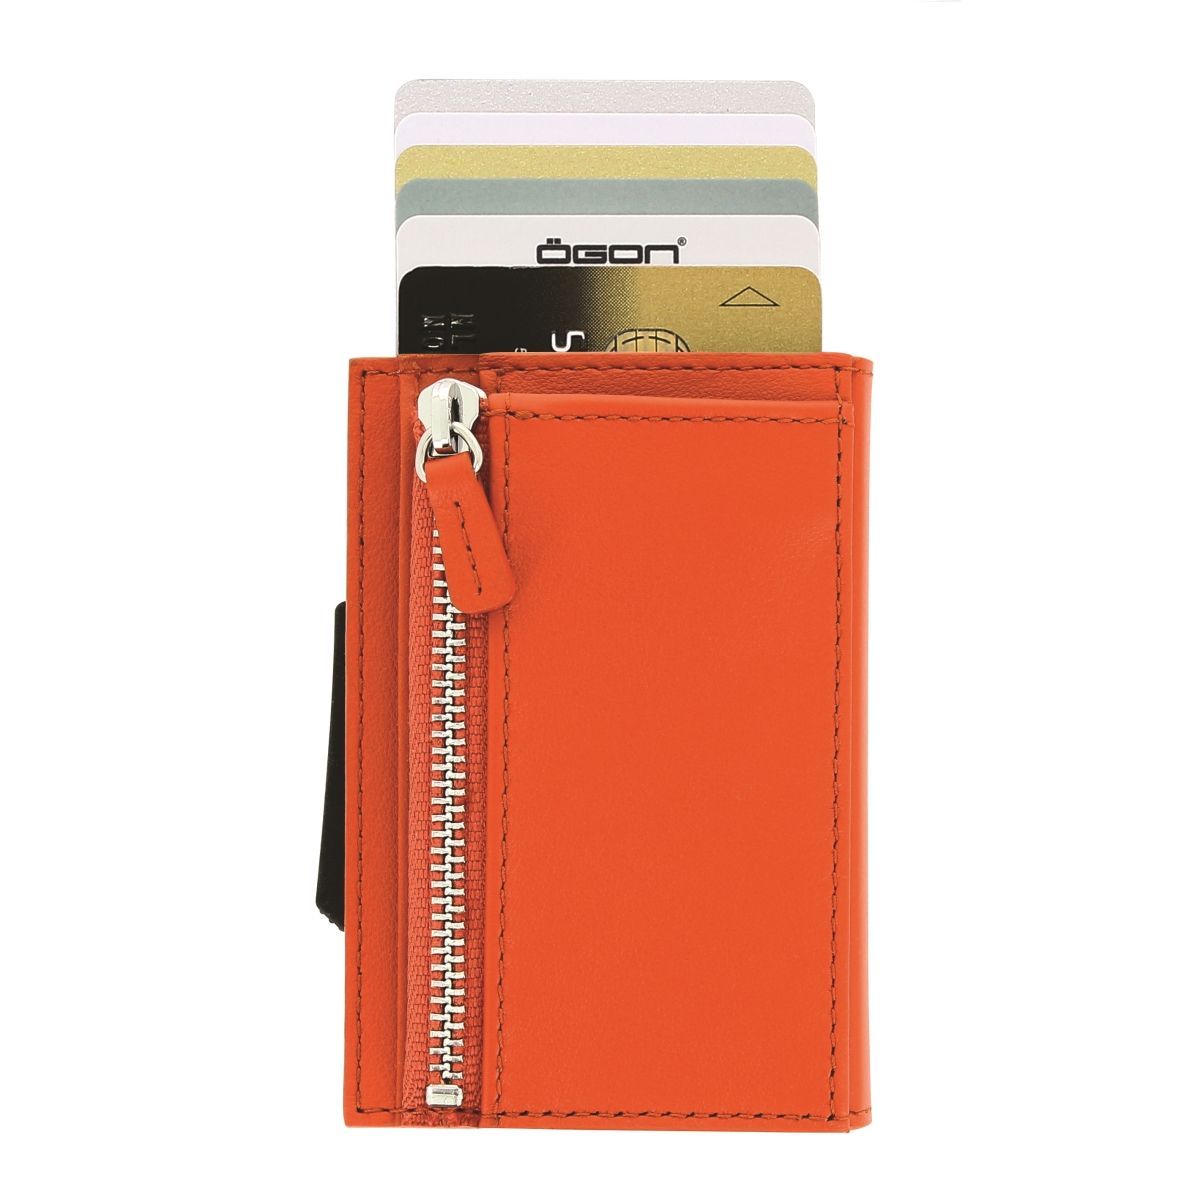 OGON Cascade Card Case Wallet With Zipper - Orange